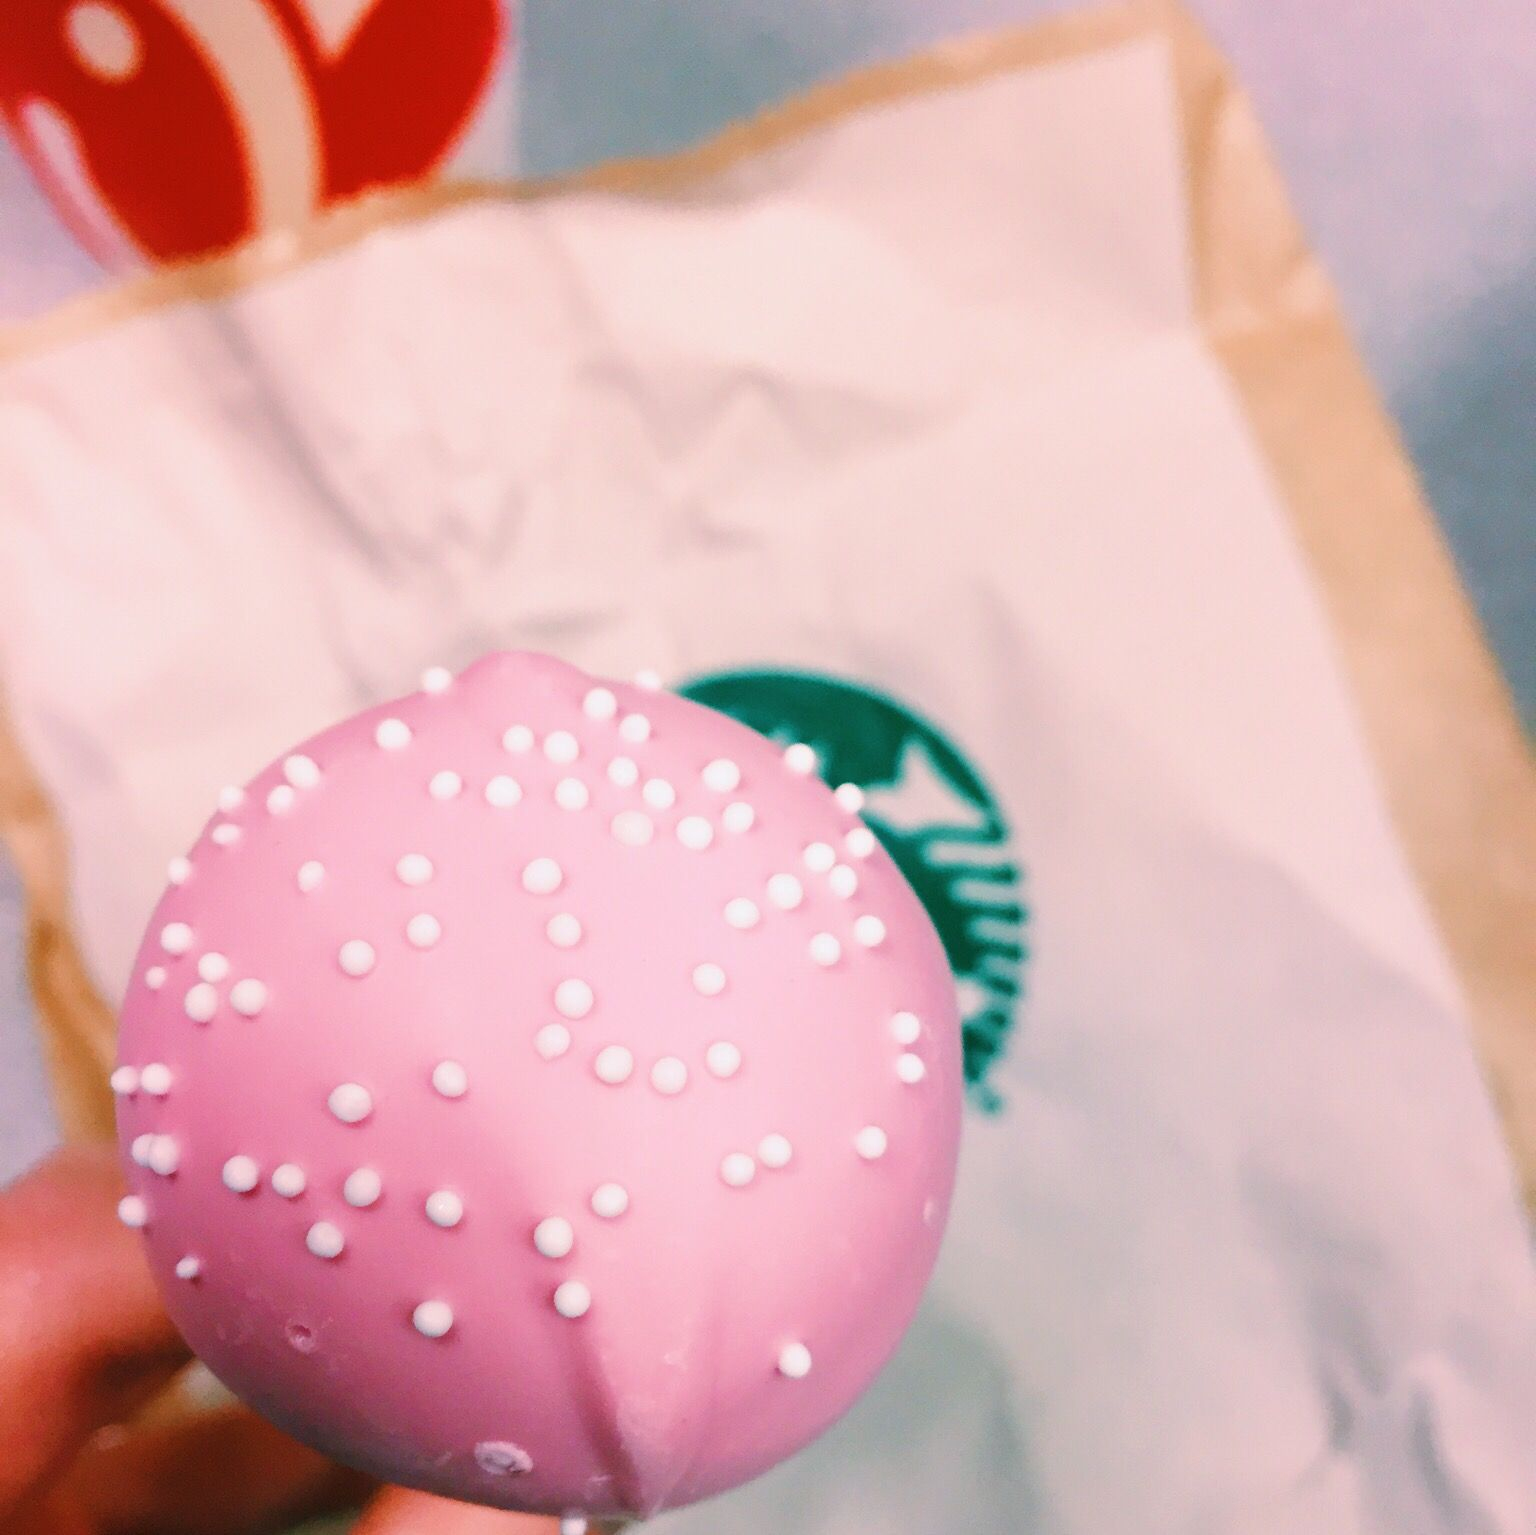 bday cake pop from star #starbuckscake